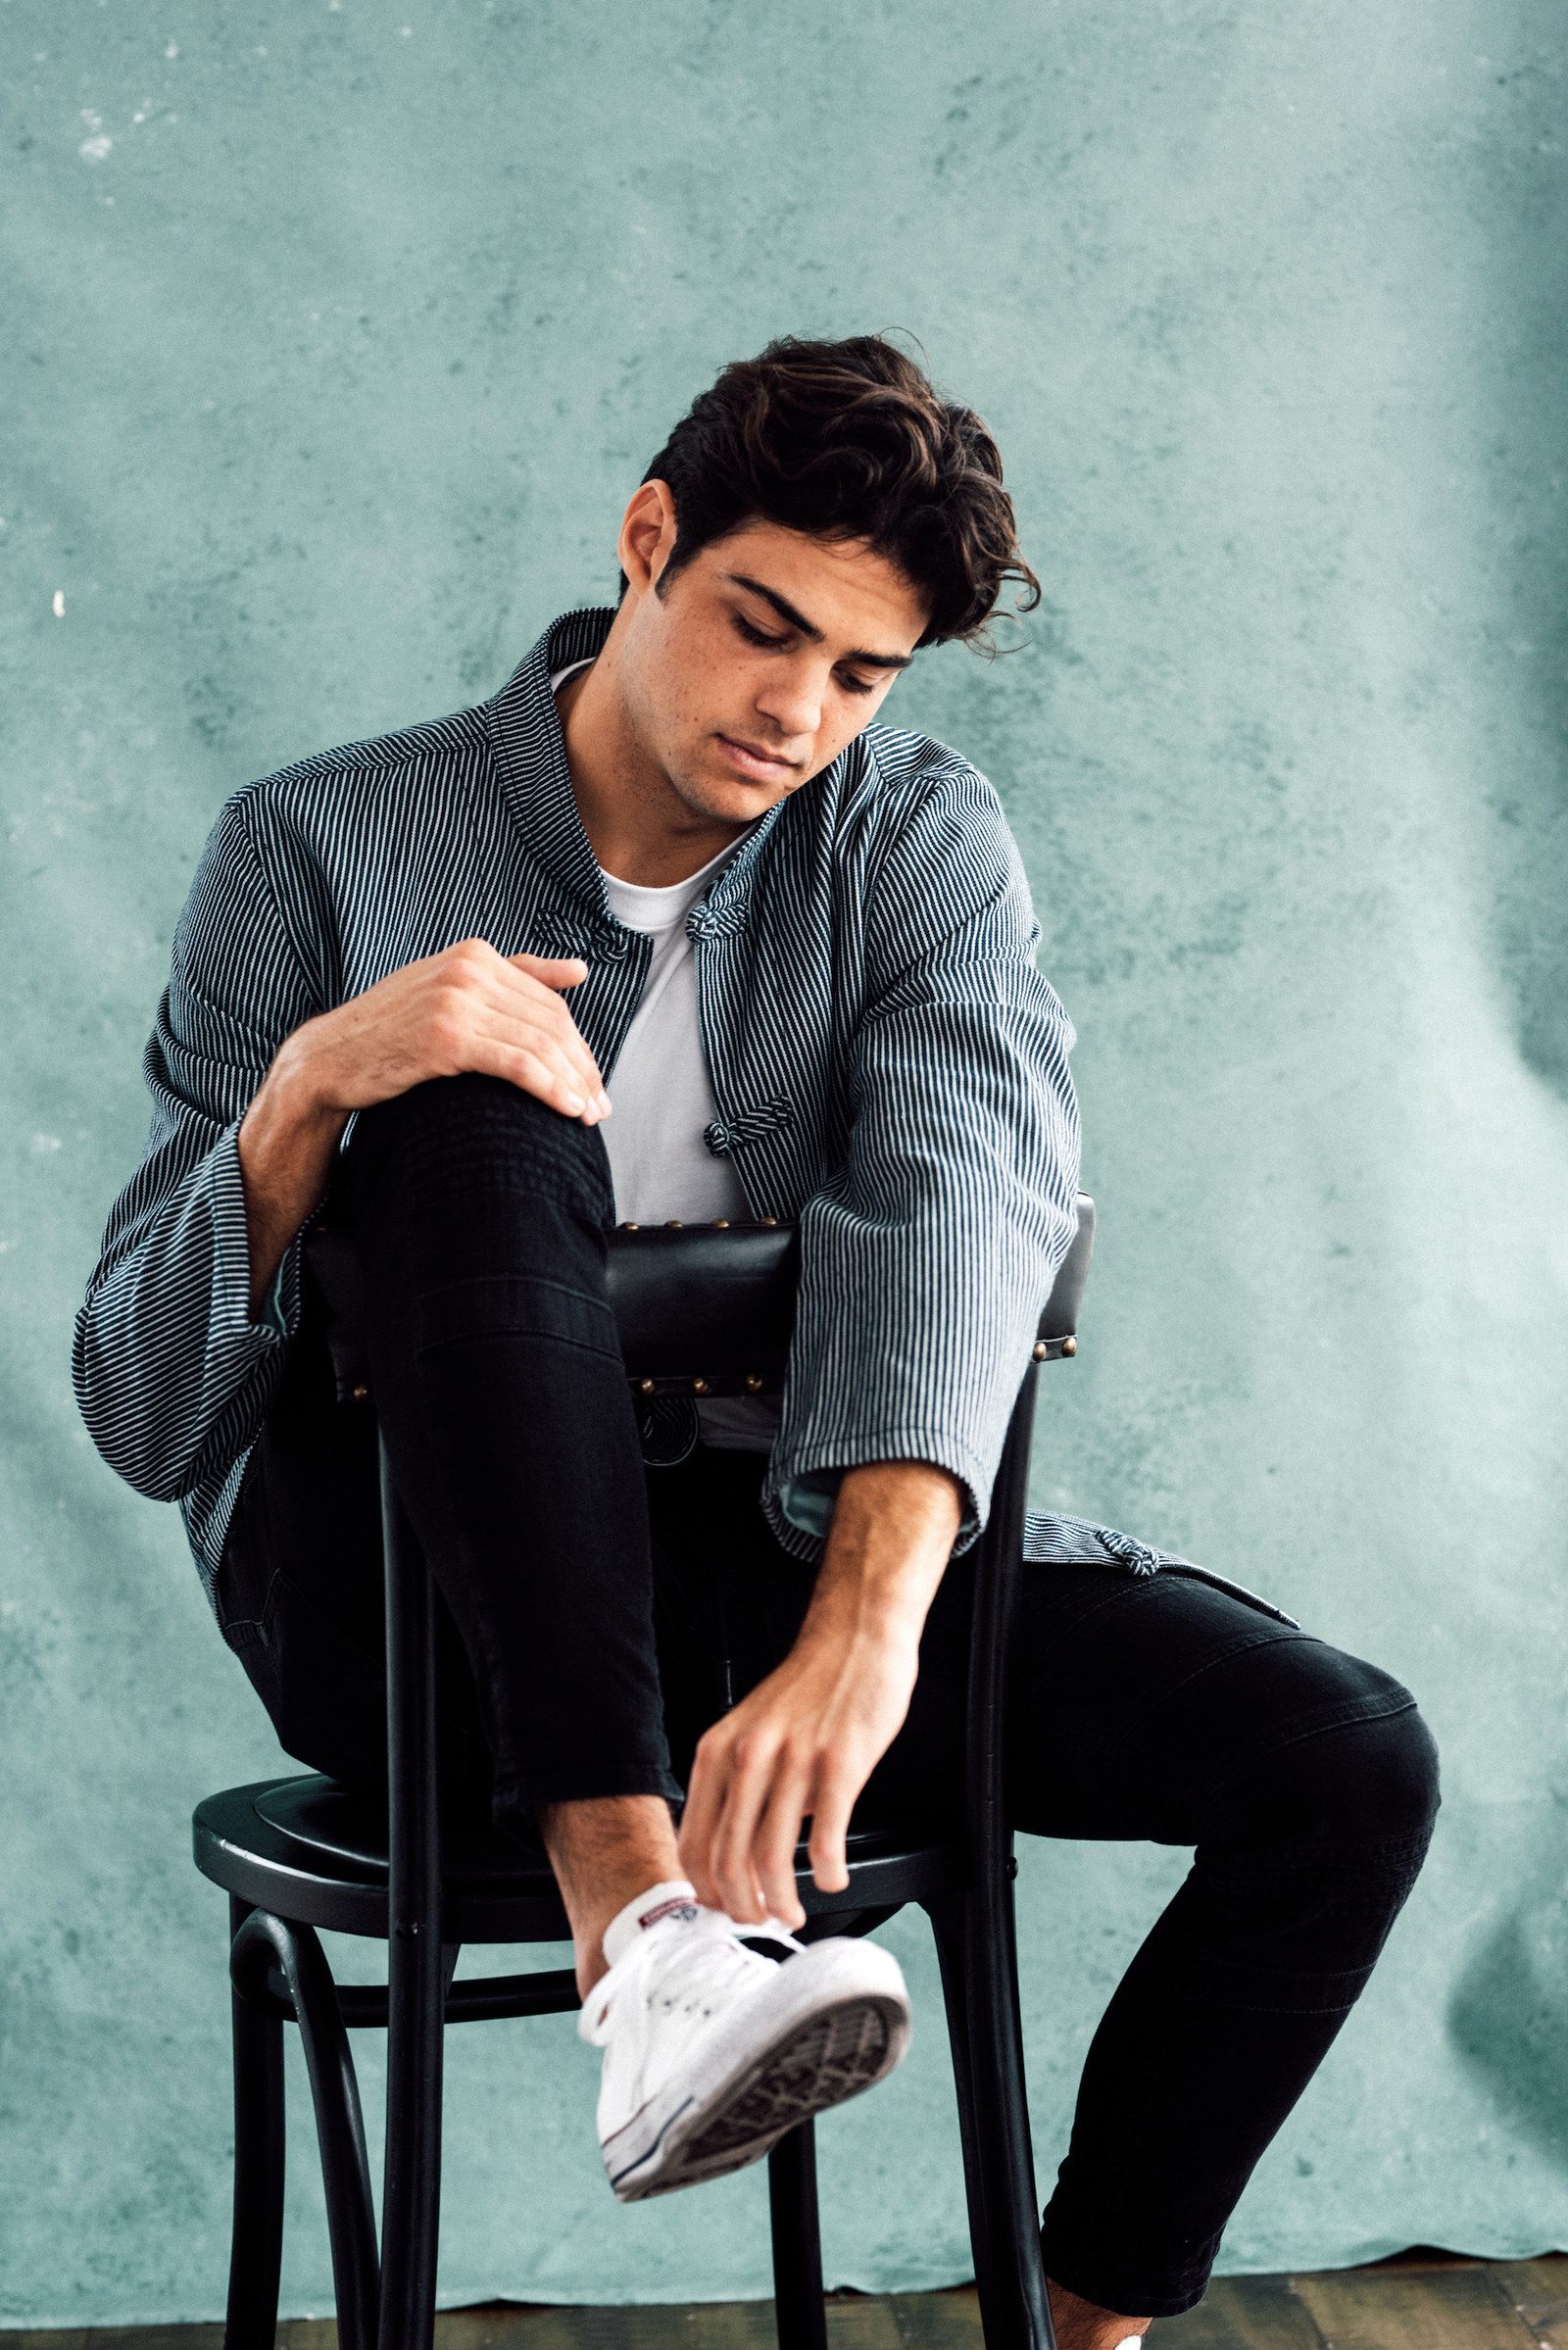 Noah Centineo Is The Netflix Teen Rom Com Heartthrob Of